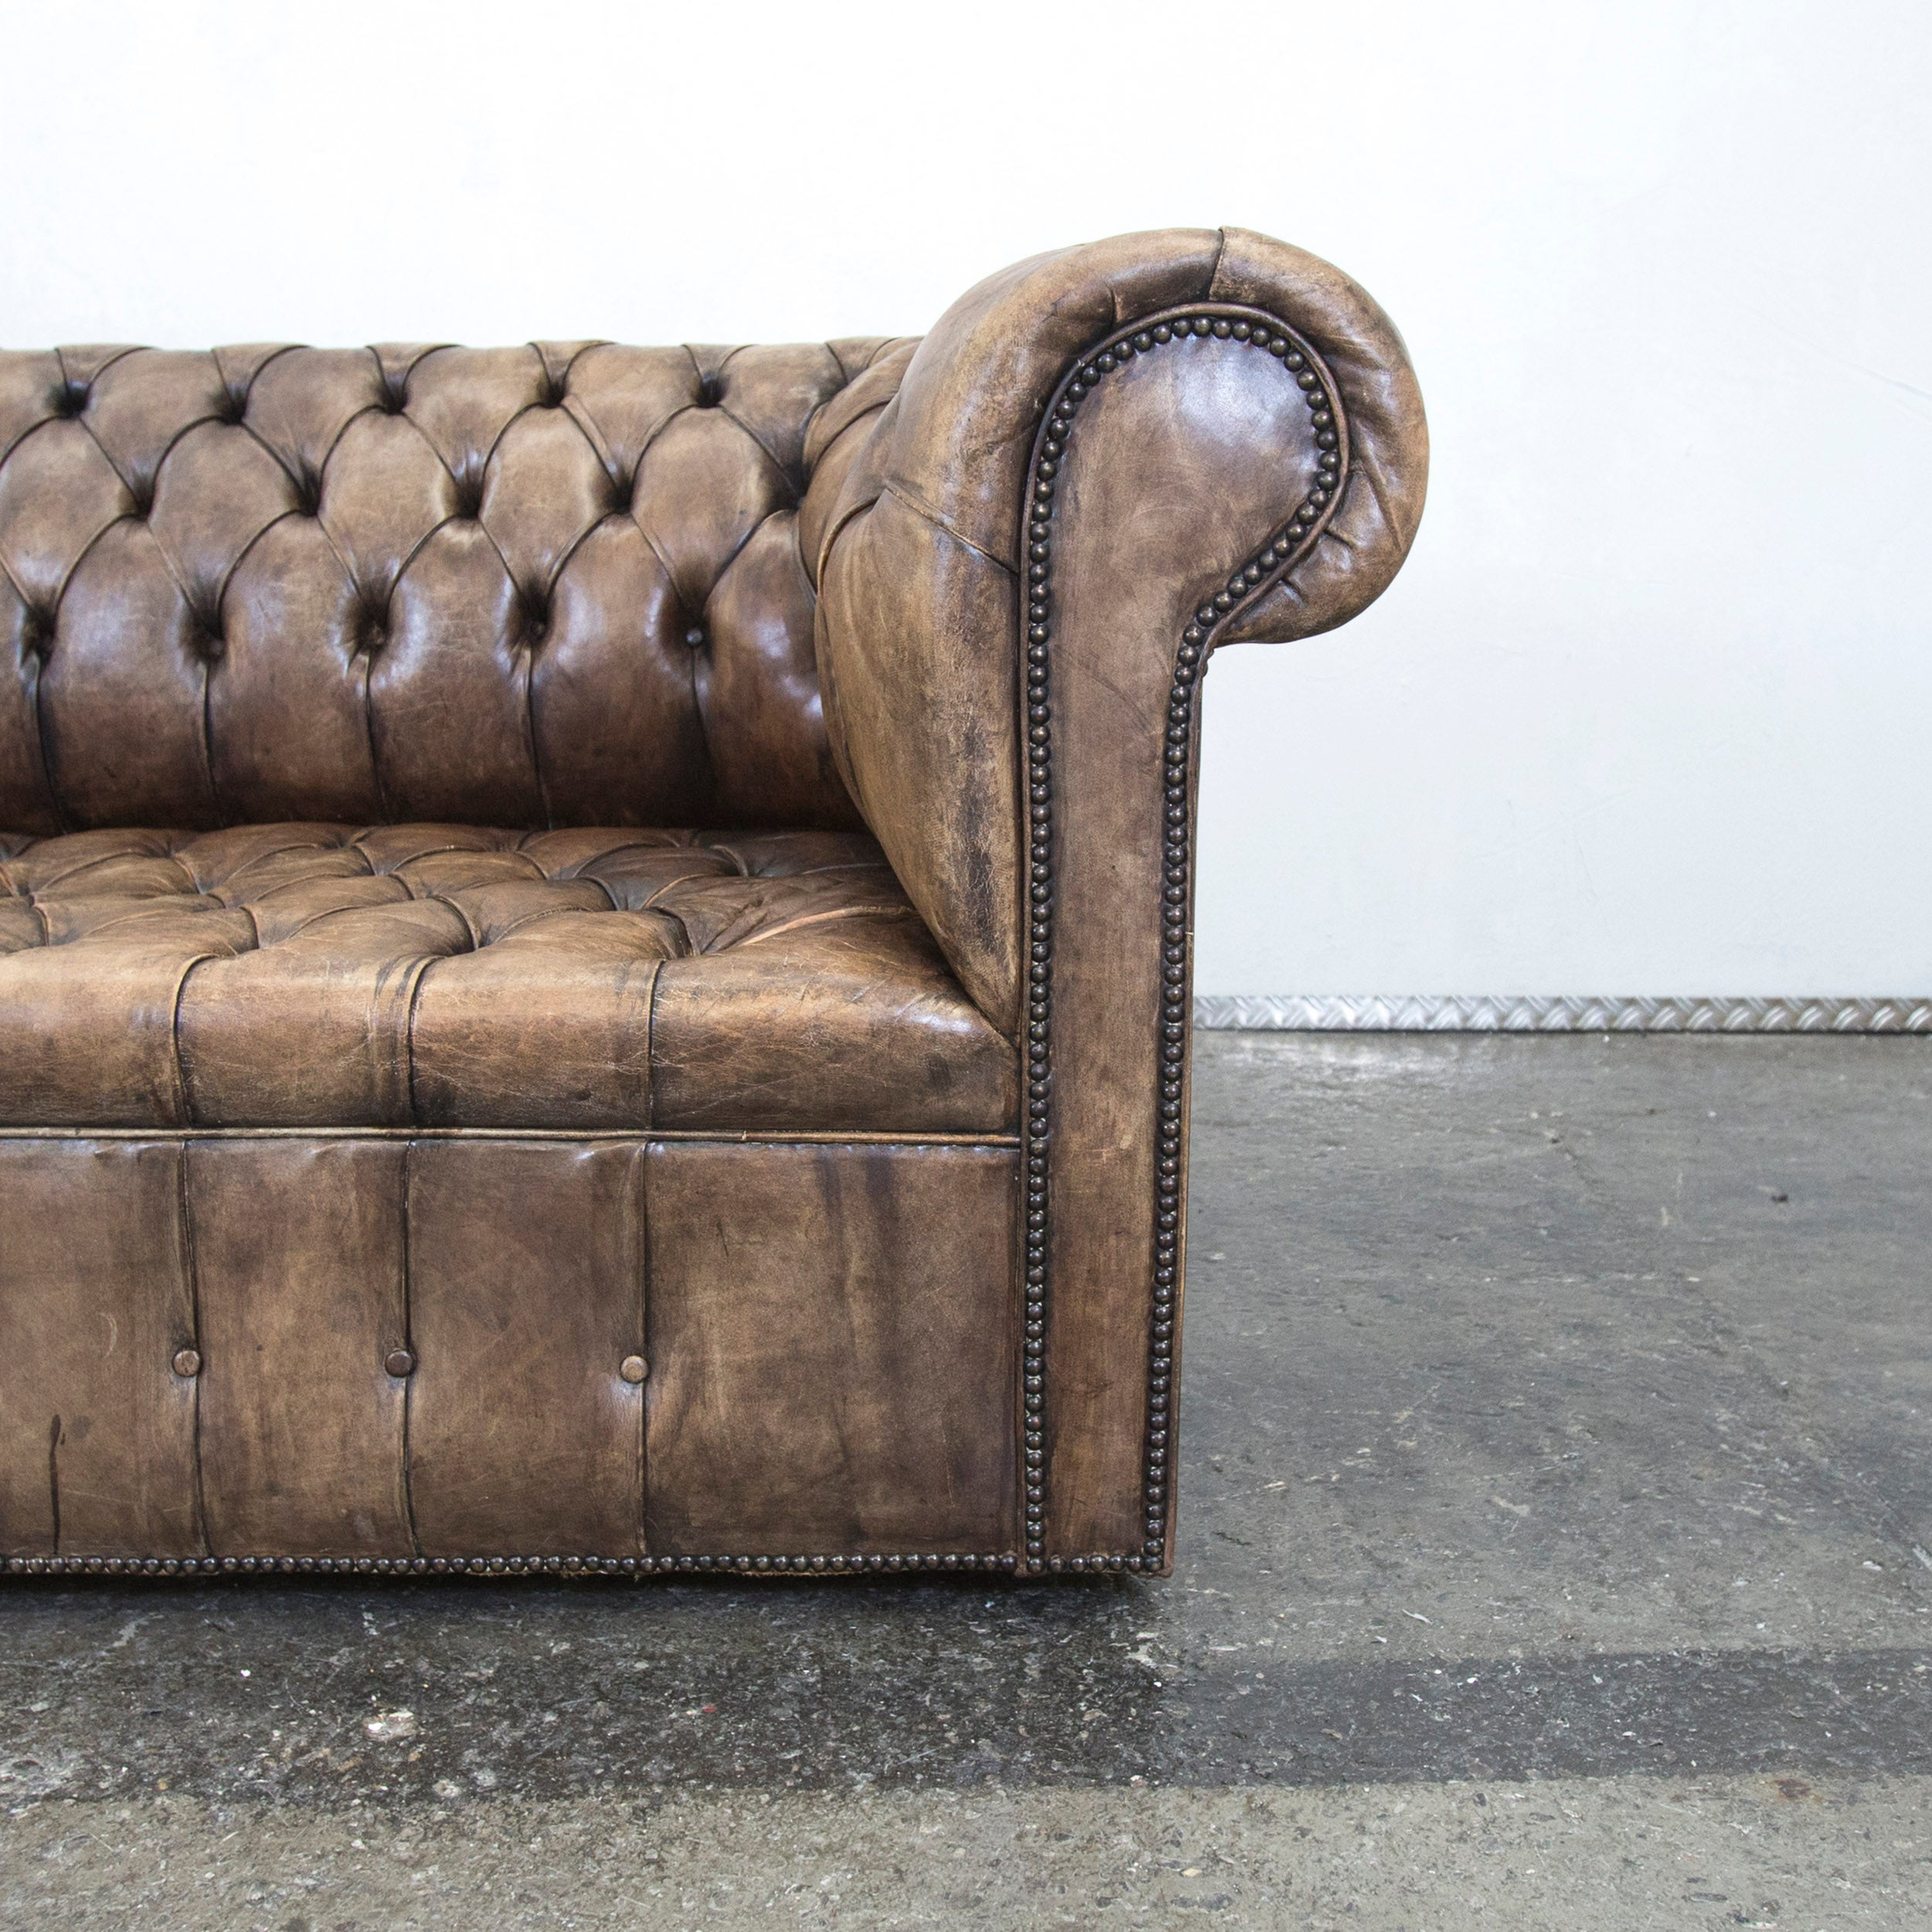 Chesterfield Sofa Brown Beige Leather Three Seat Couch Vintage Retro For  Sale At 1stdibs